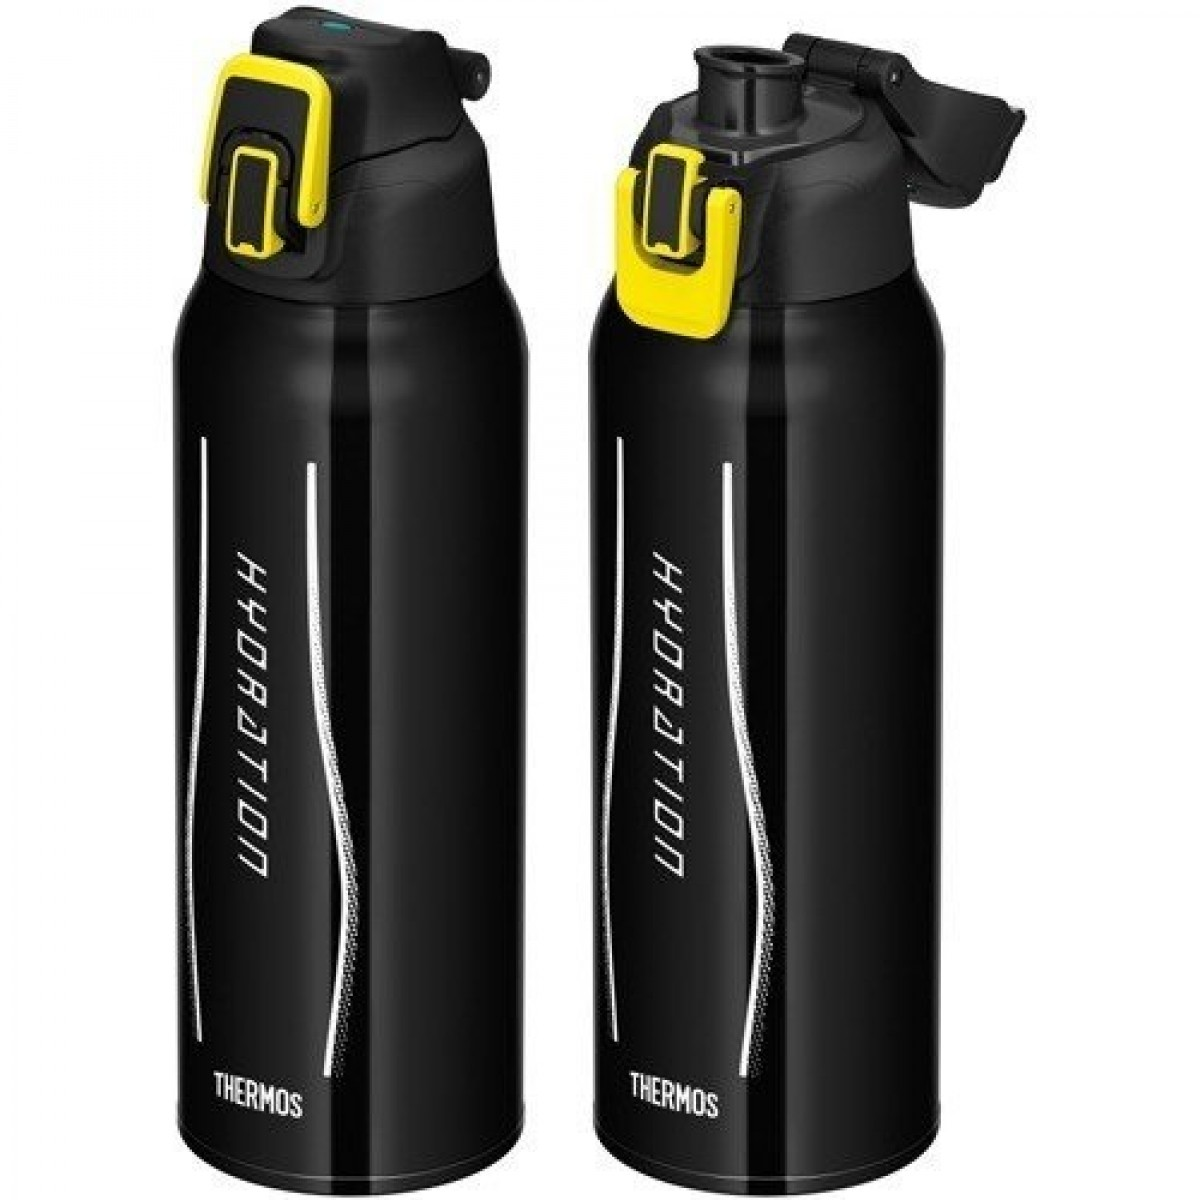 Thermos 1.0L FHT-1000F Vacuum Insulated Sport Bottle with Pouch